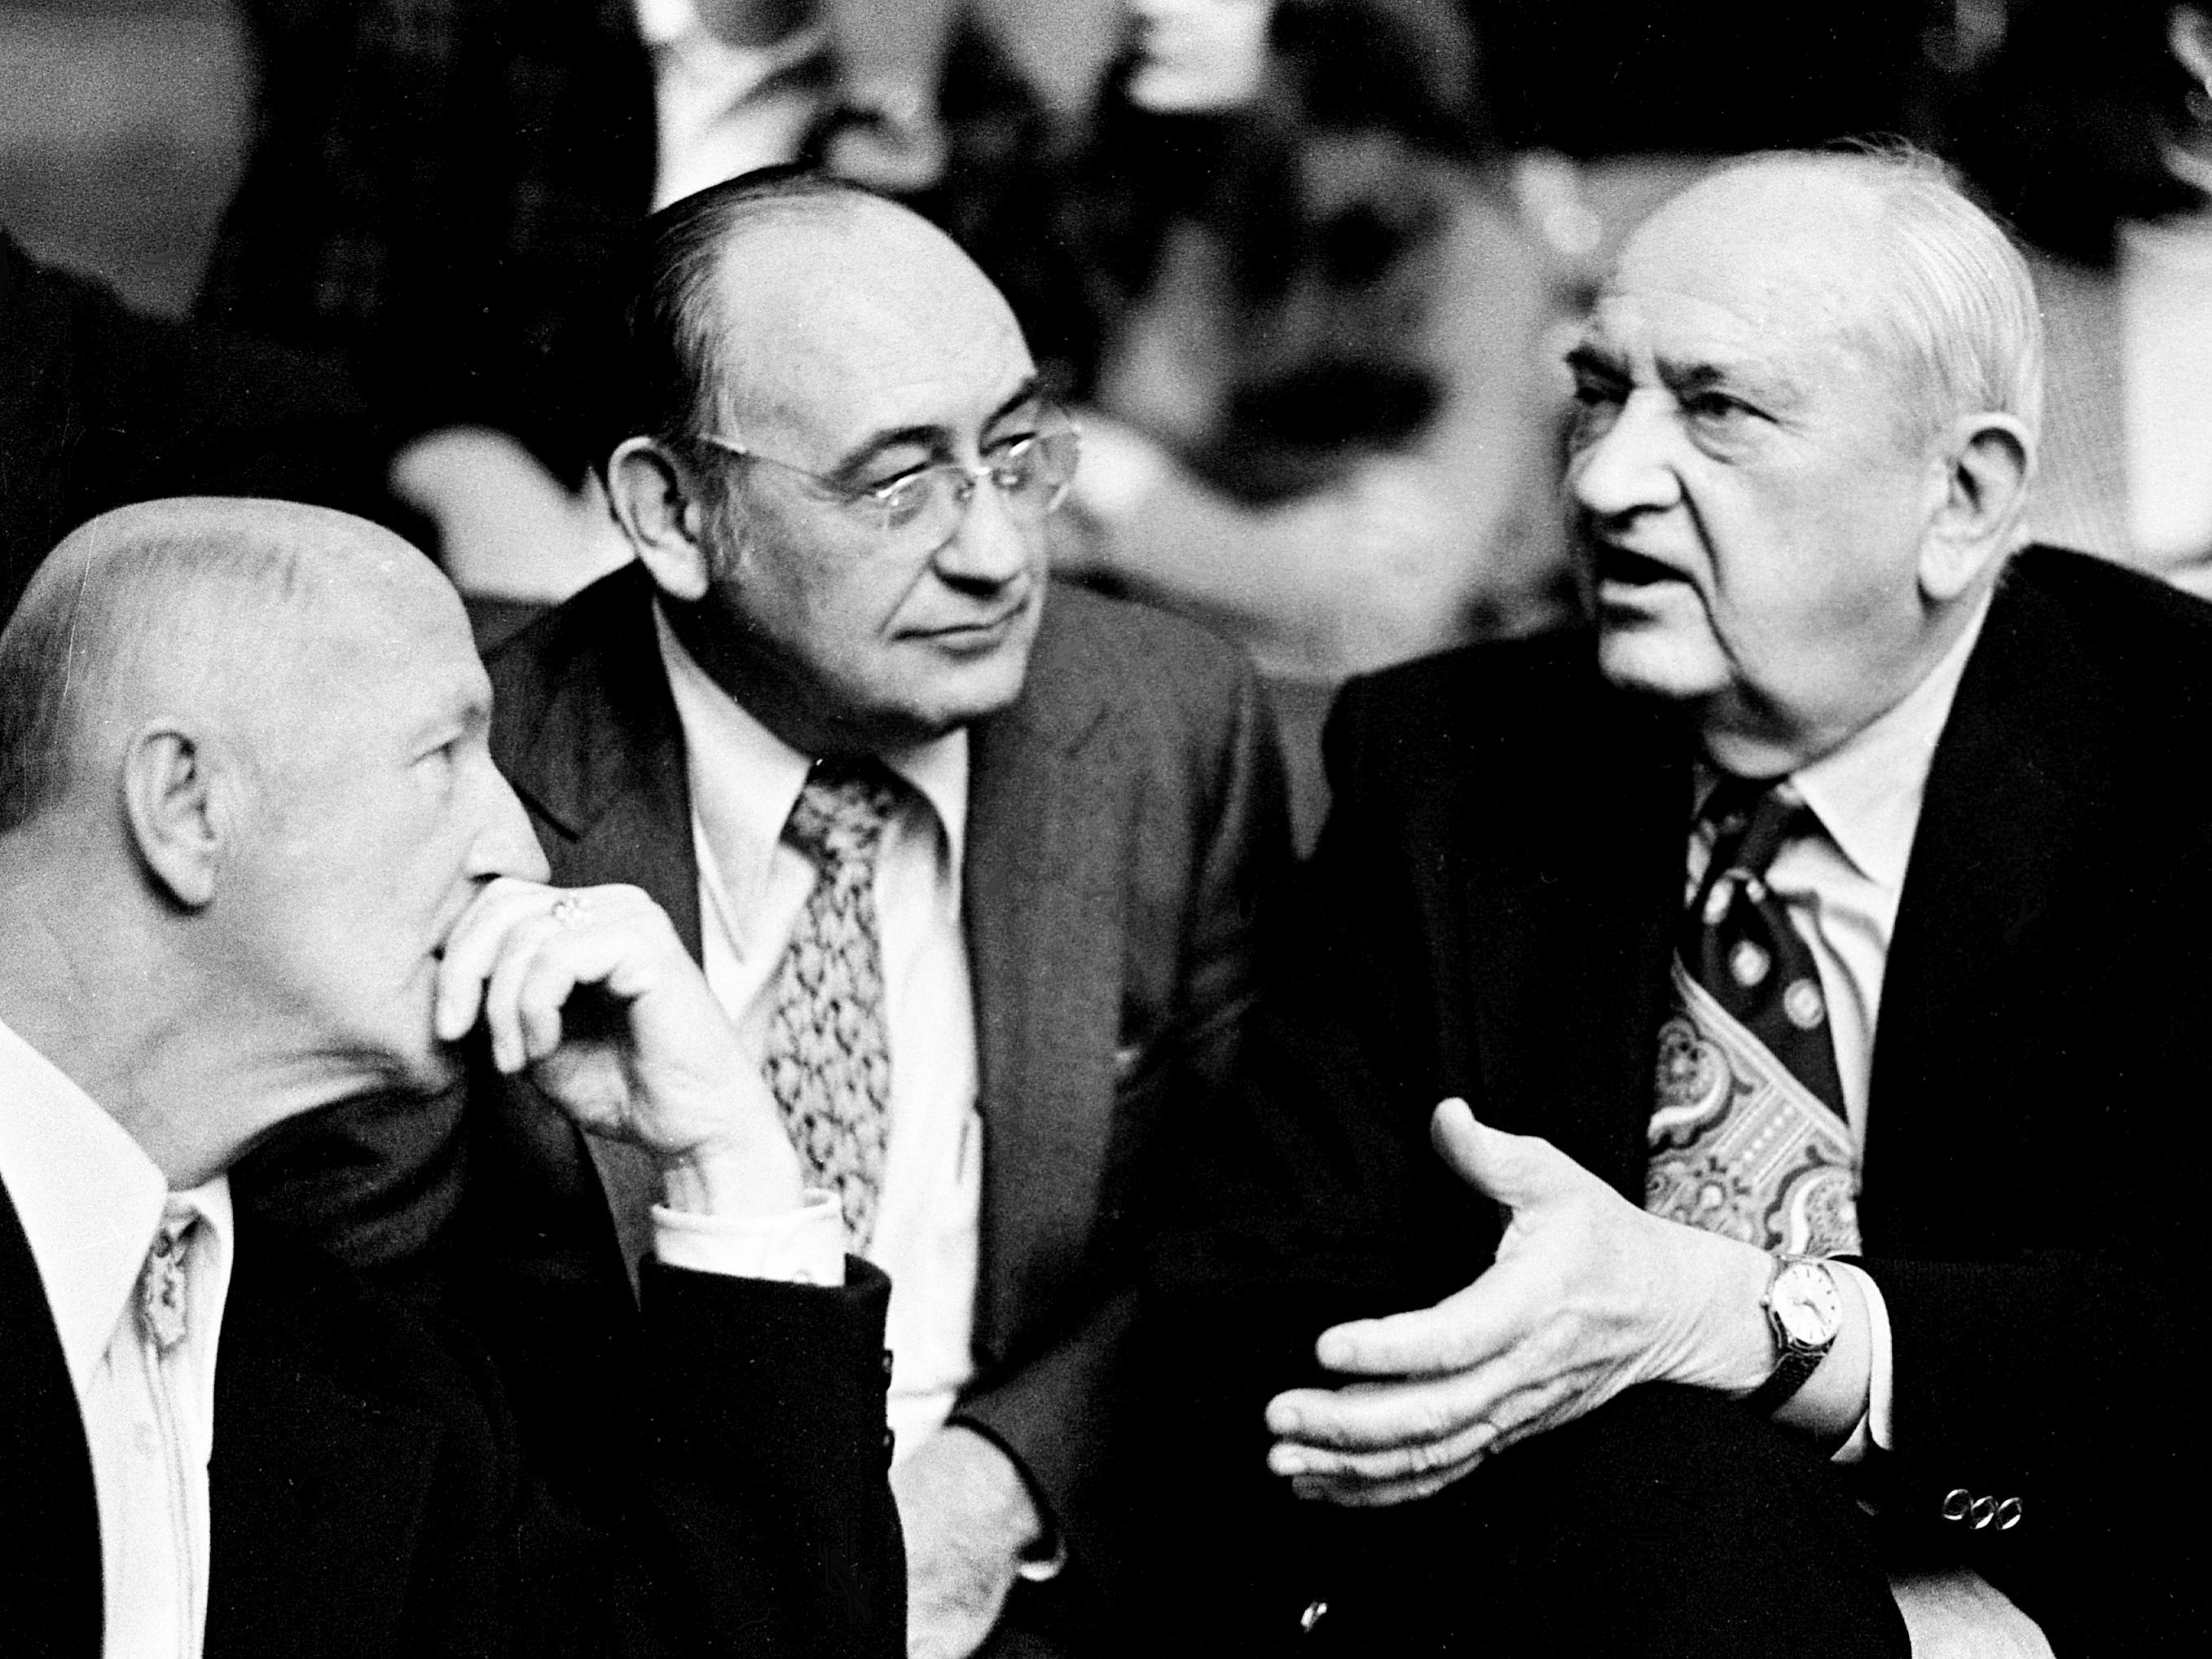 Retire Kentucky coach Adolph Rupp, right, talks with Scoop Hudgins, center, and another before the start of the Wildcats championship game against Indiana. The Indiana Hoosiers defeated the Kentucky Wildcats 72-65 to win the Mideast Regional championship before 16,000 at Memorial Gym March 17, 1973.